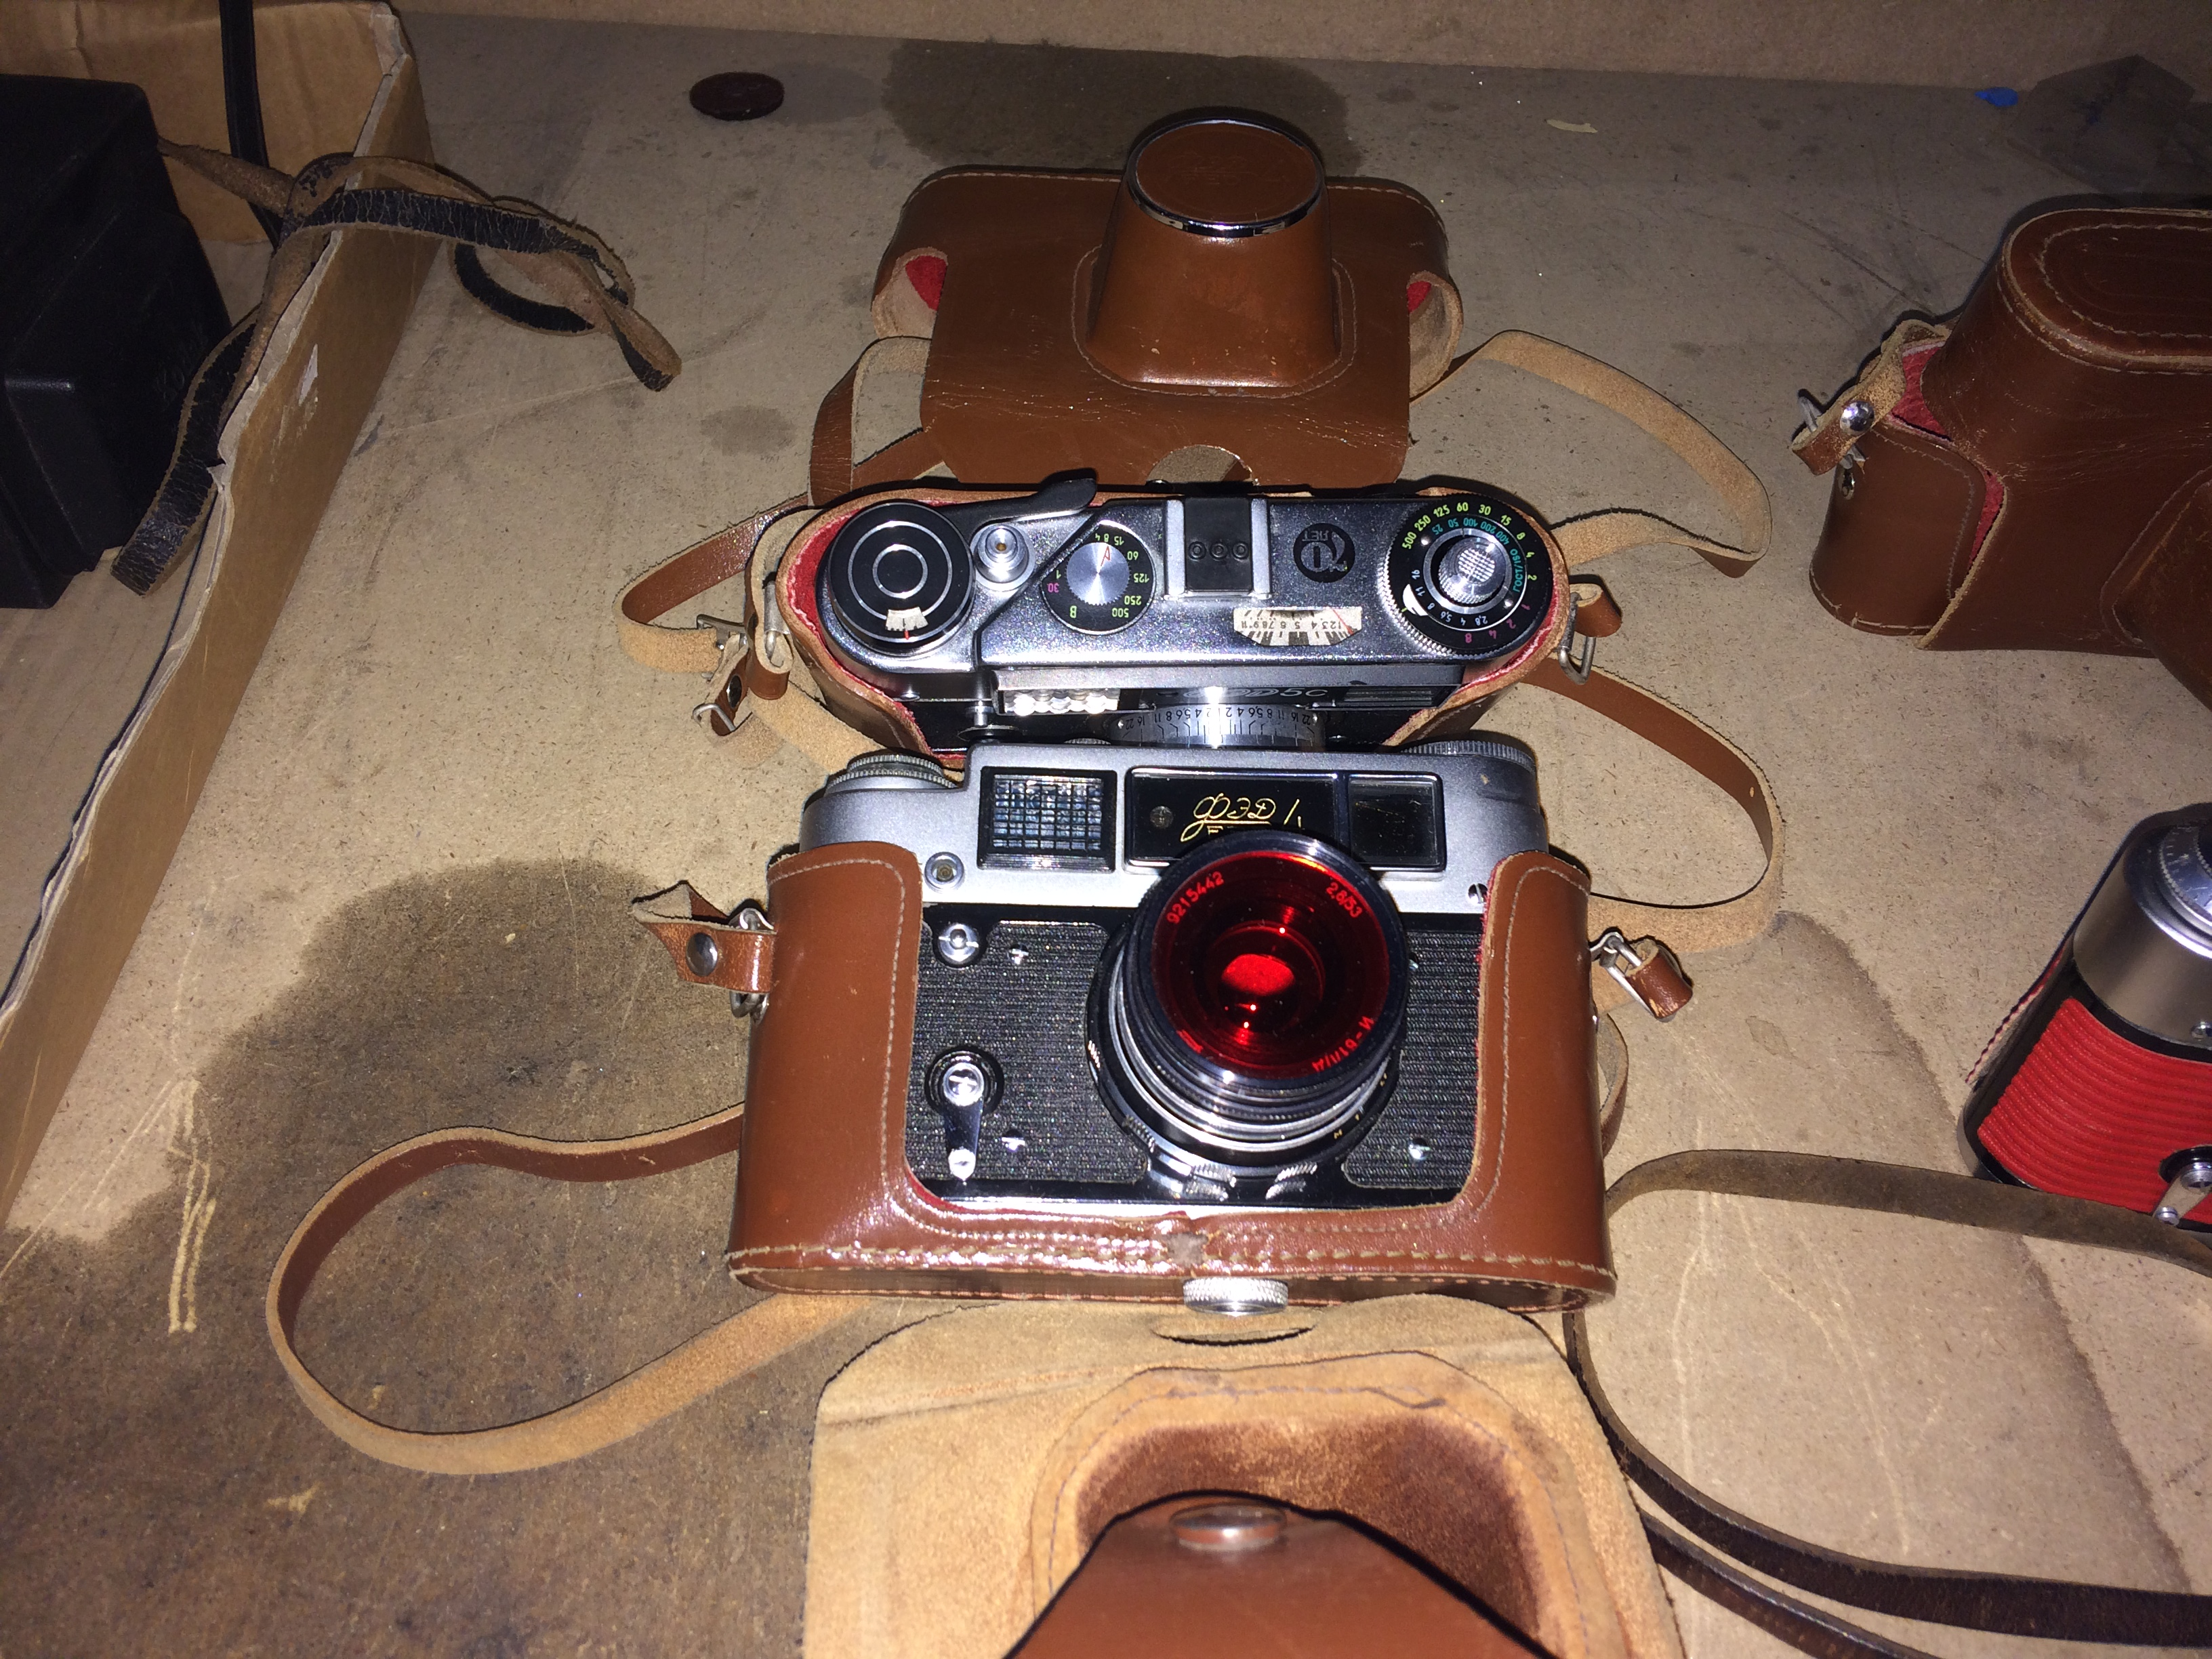 Lot 58 - 2 x items - FED QED 5C camera with leather case and a FED QED 4 camera with leather case